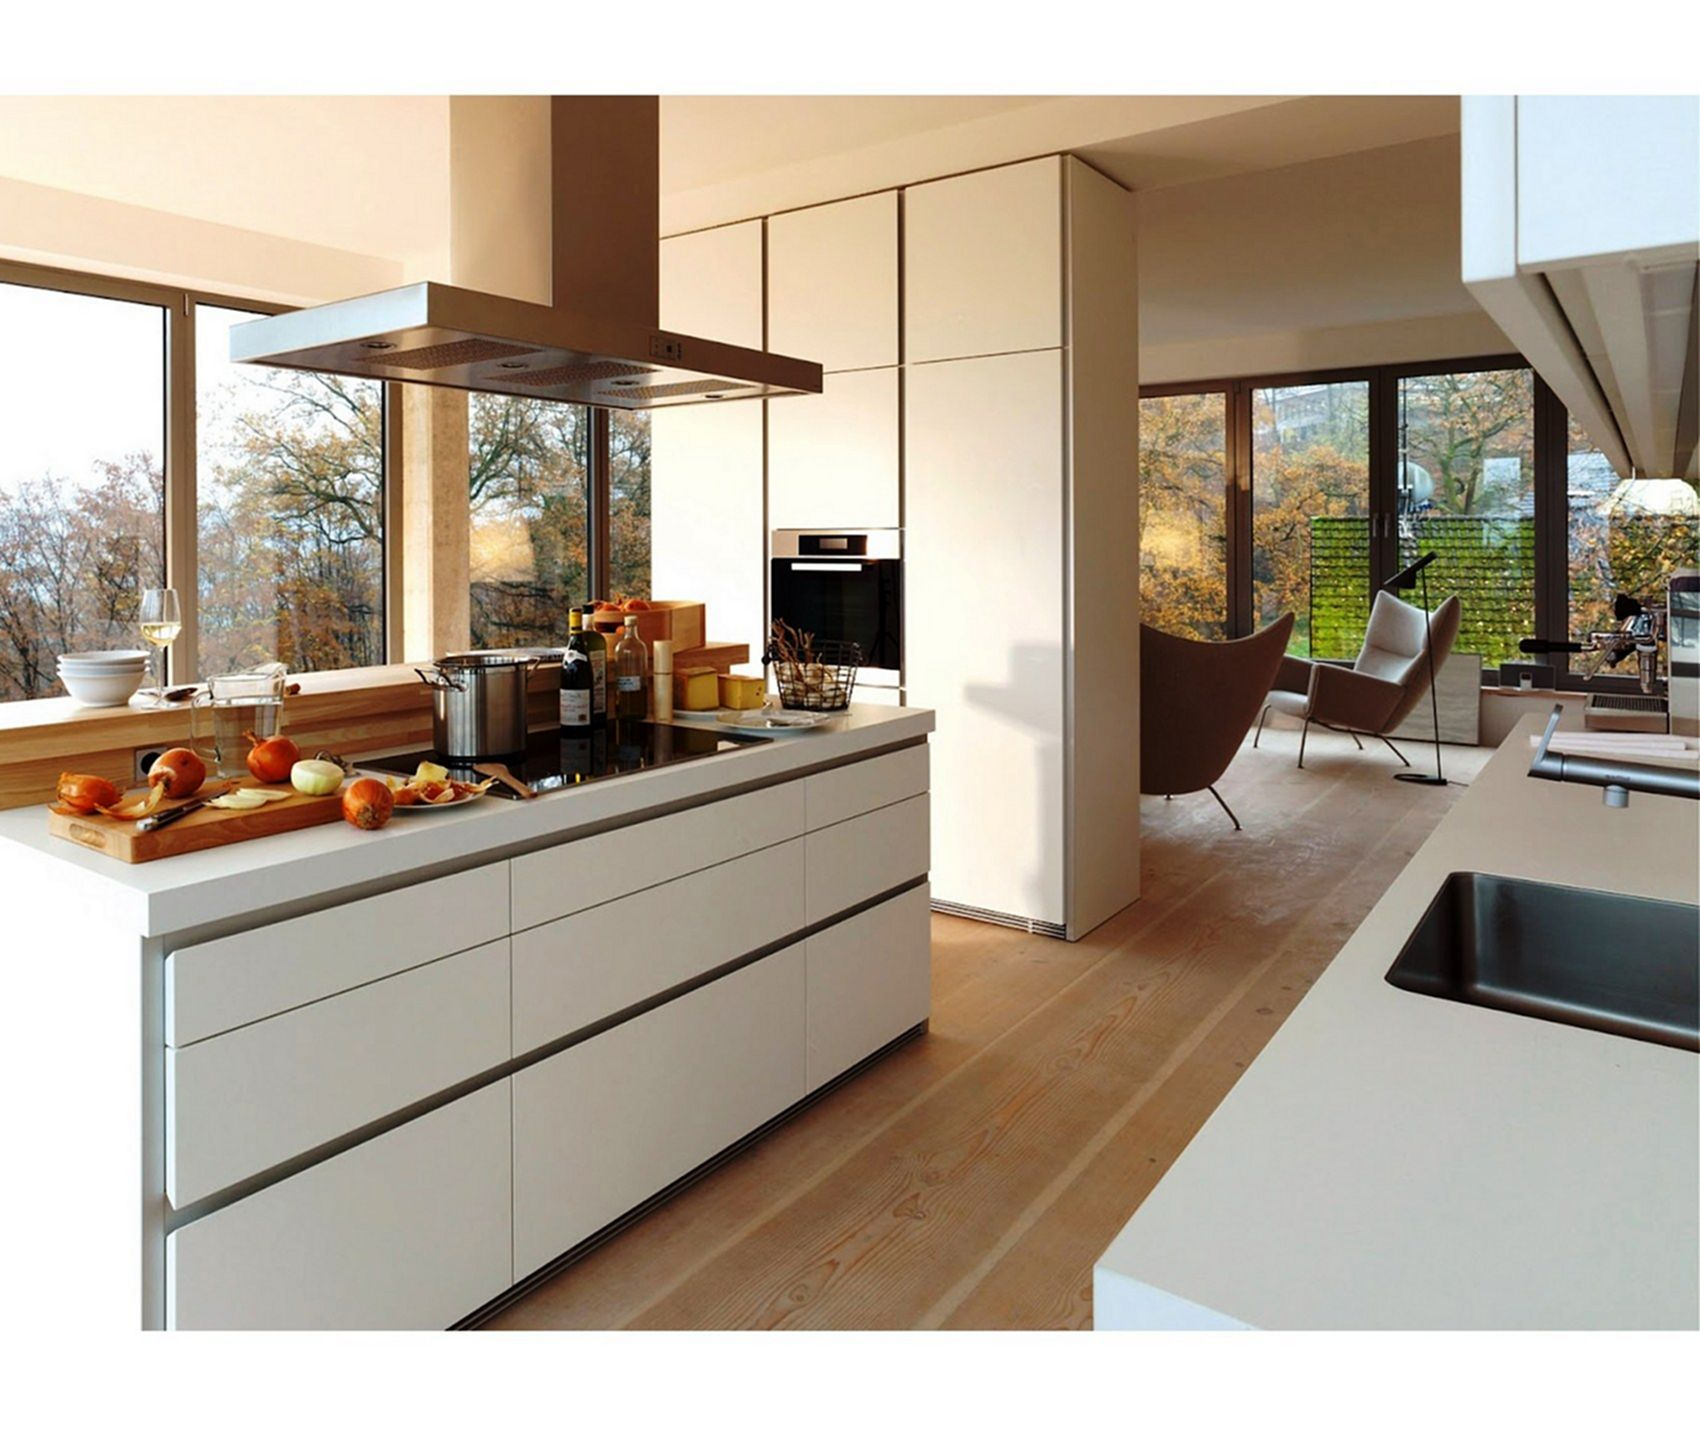 25 best simple kitchen design ideas on a budget simple kitchen design simple kitchen on kitchen ideas simple id=21075